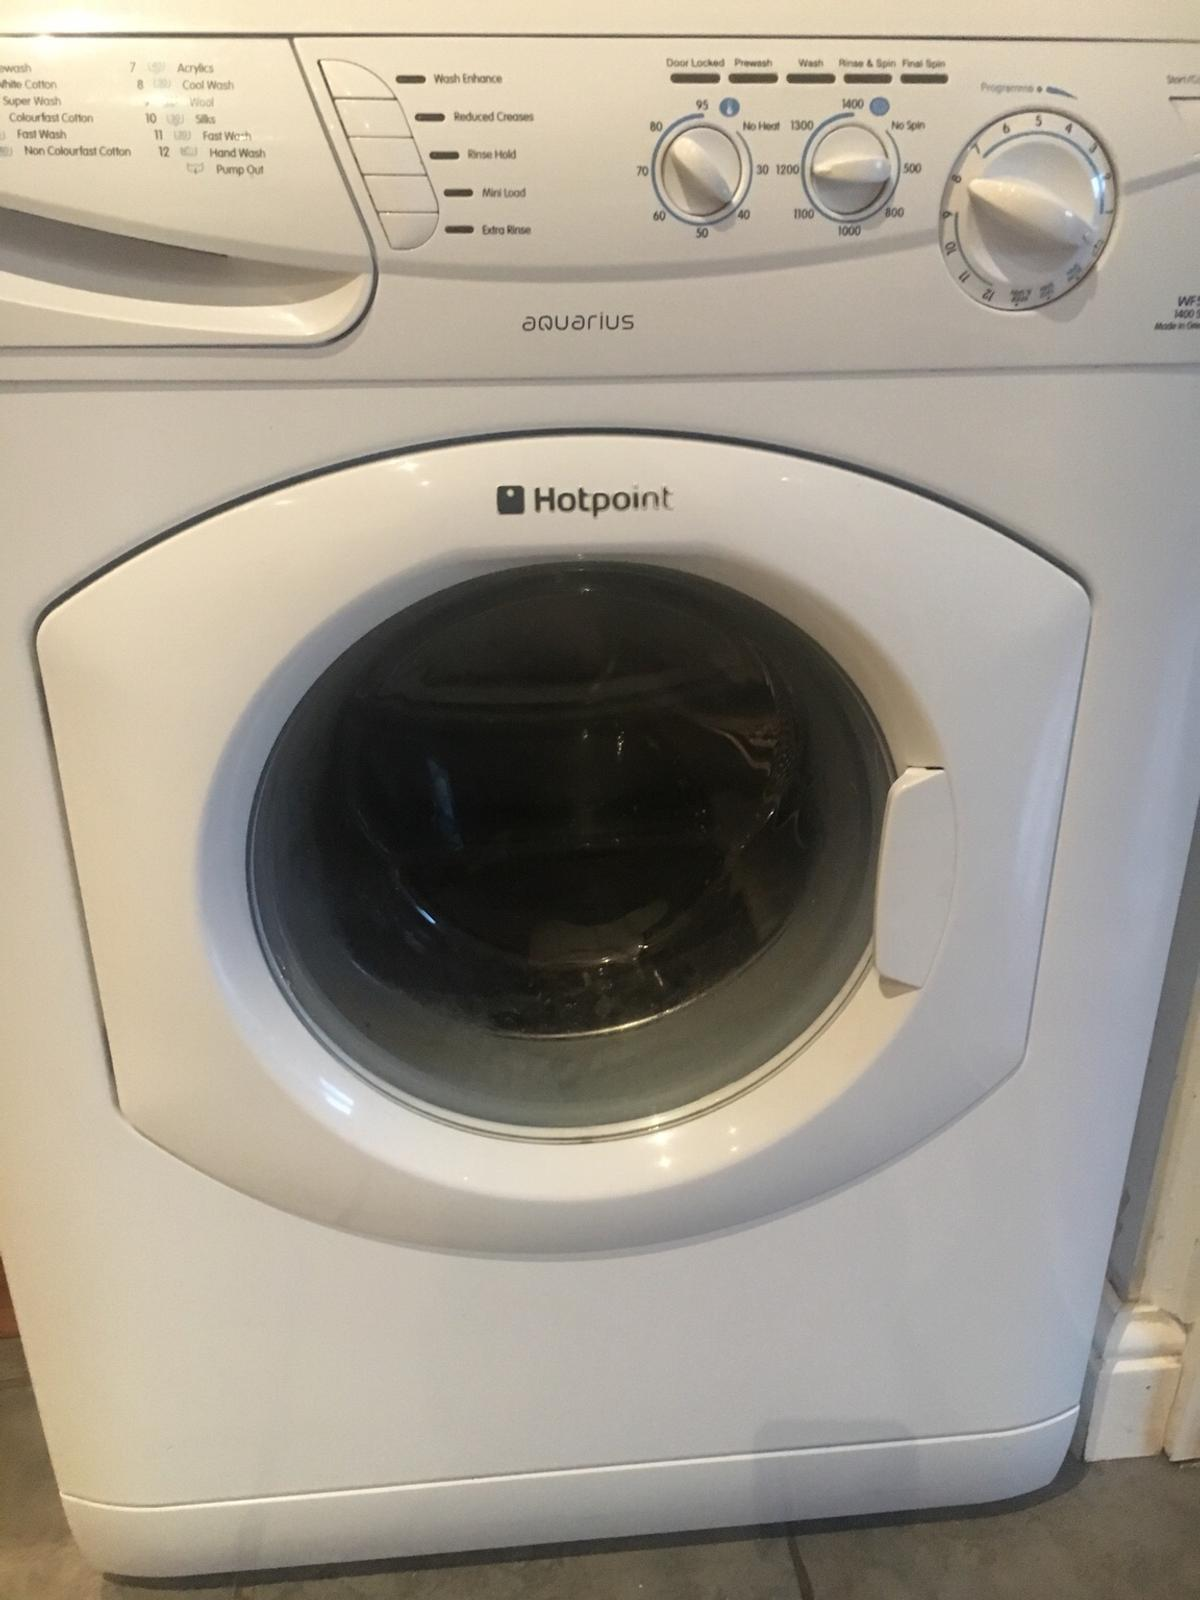 6kg Hotpoint Aquarius Washing Machine in WN4 Wigan for £30 00 for